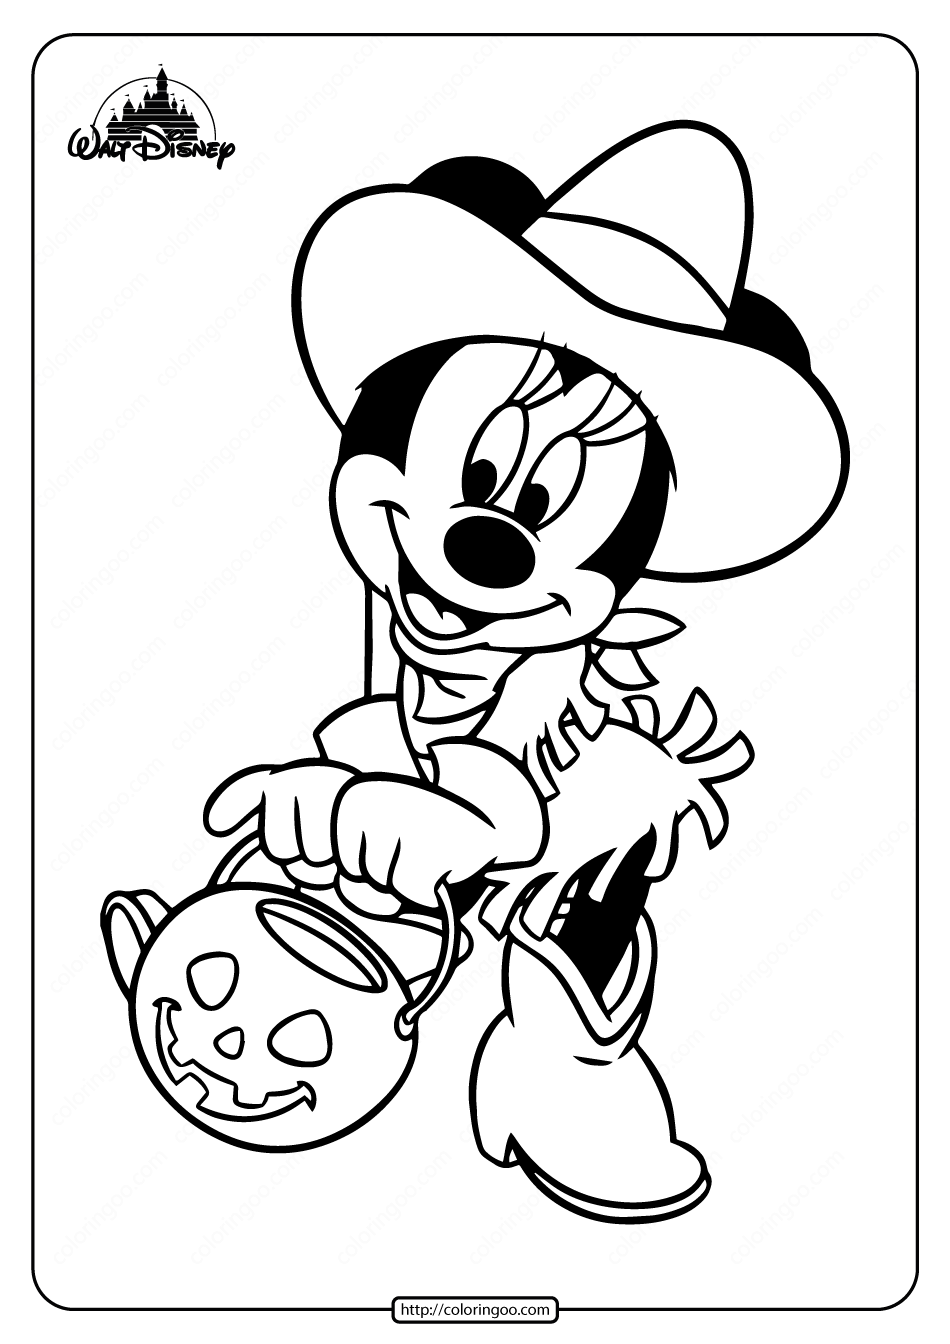 Disney Minnie Halloween Coloring Pages Minnie Mouse Coloring Pages Halloween Coloring Pages Halloween Coloring